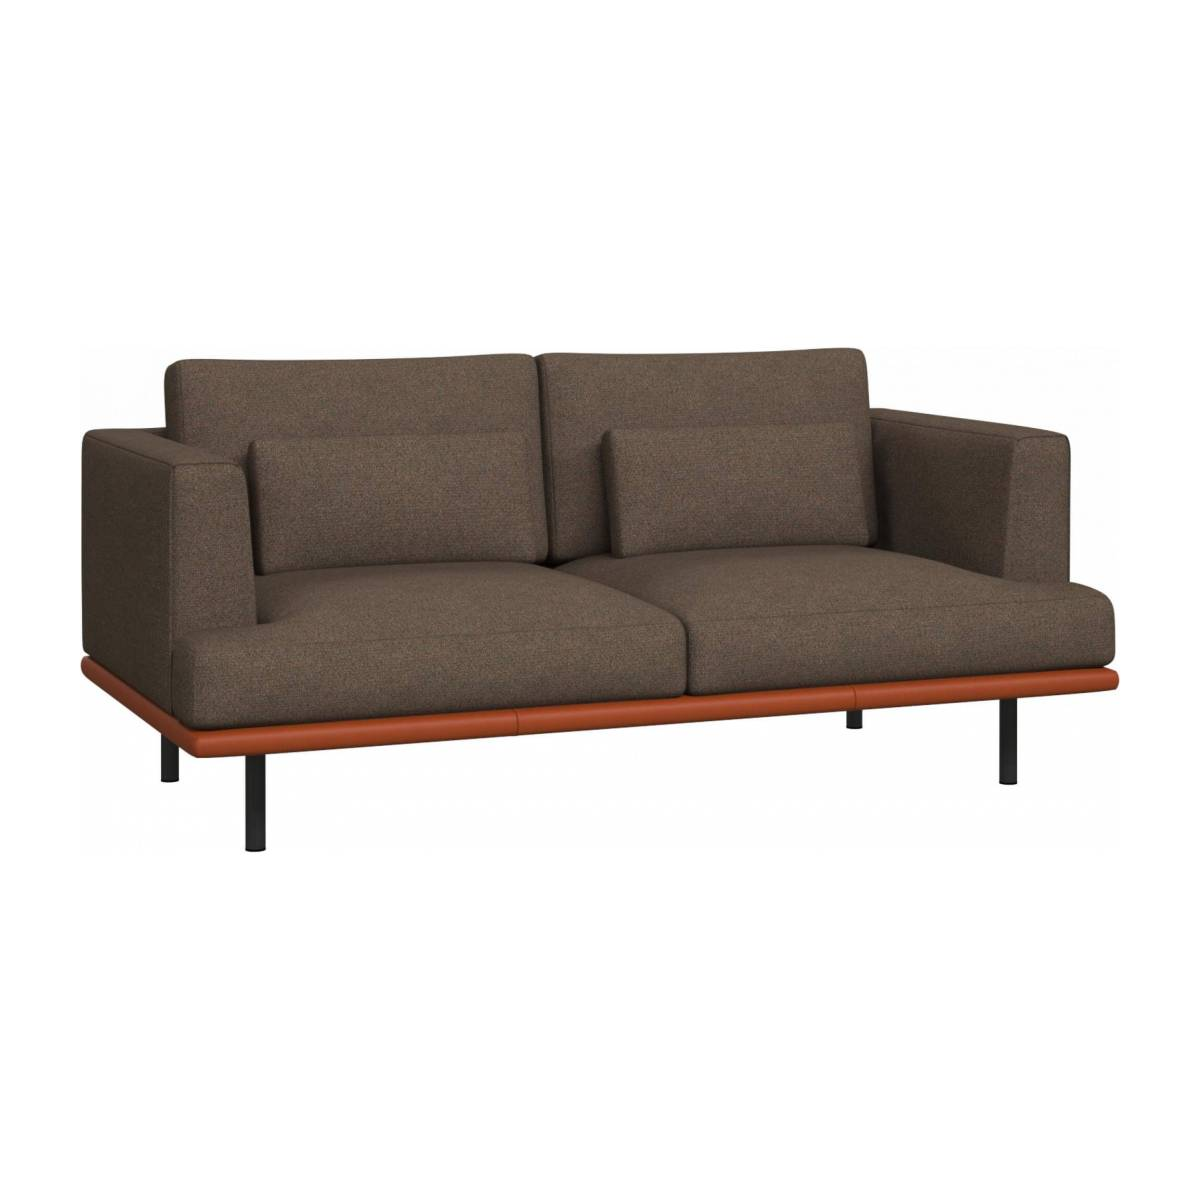 2 seater sofa in Lecce fabric, burned orange with base in brown leather n°3